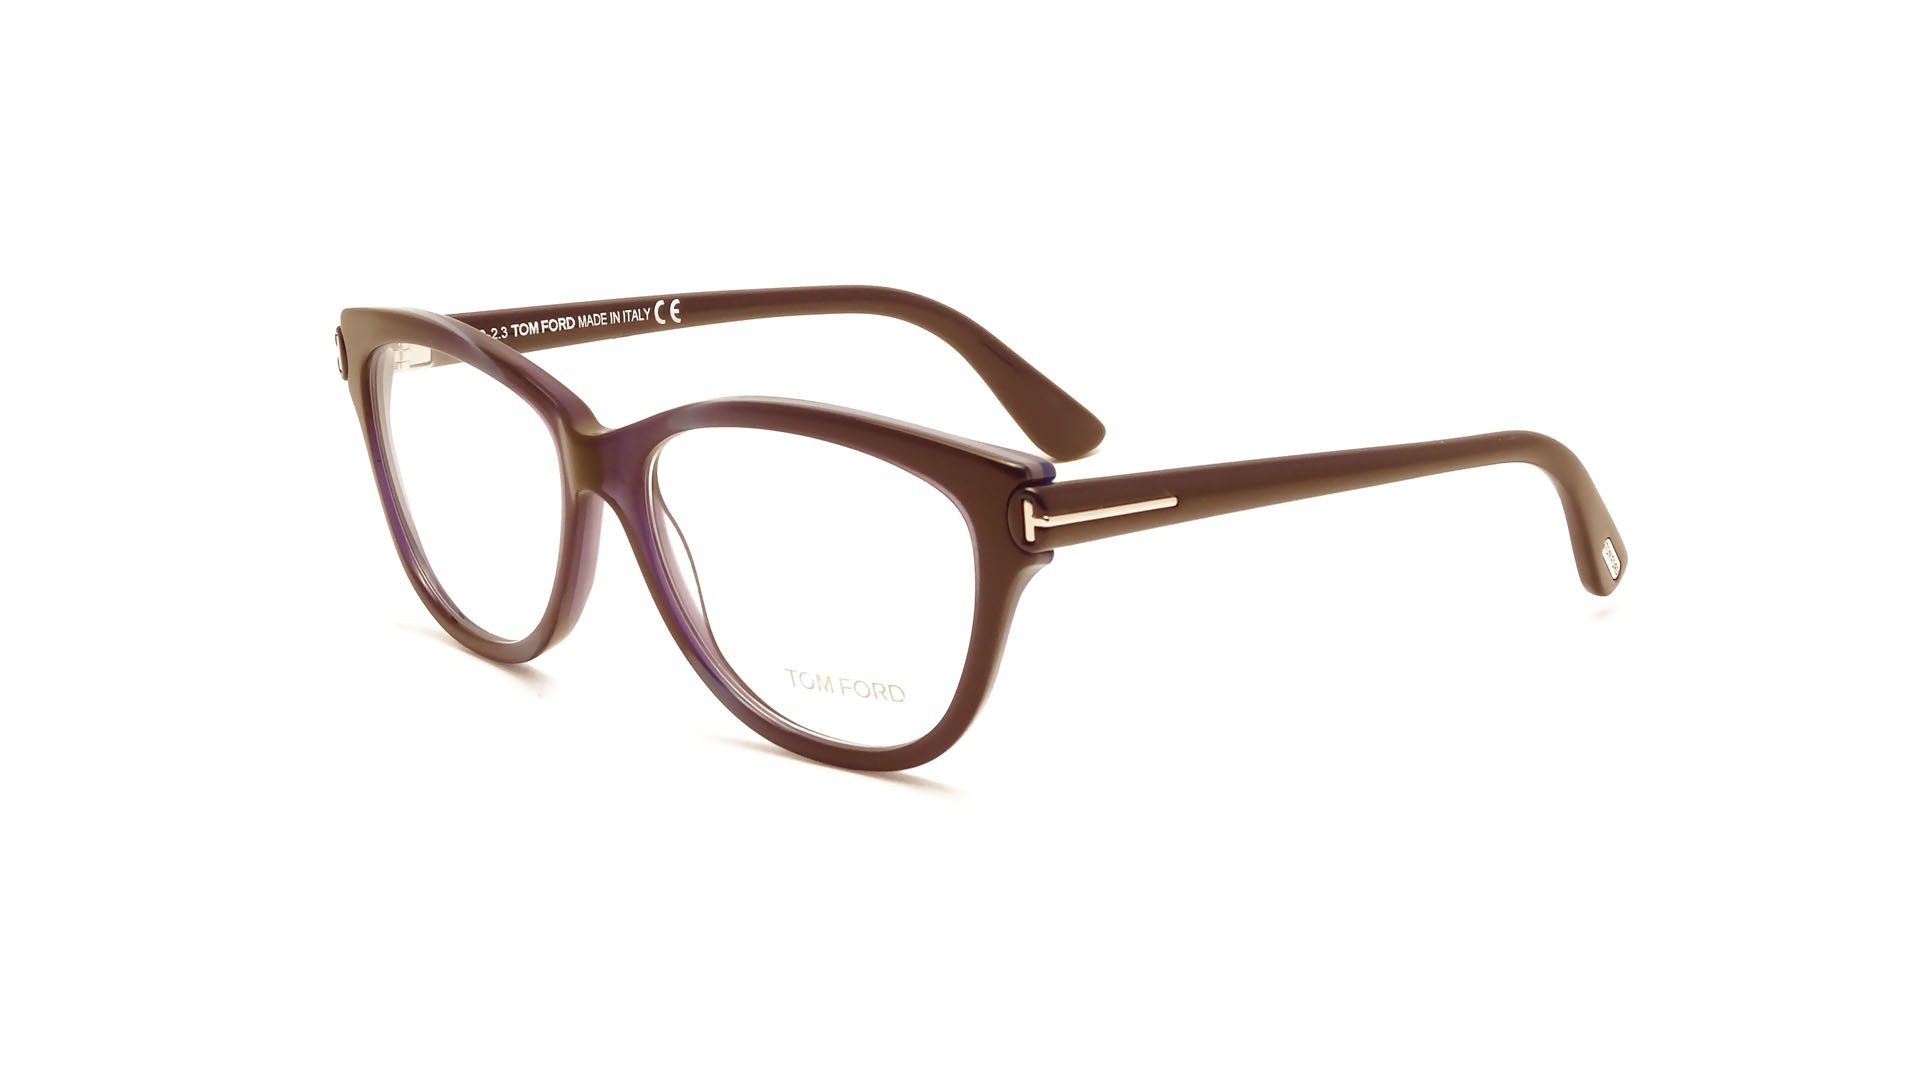 Glasses Frames Recto Or Quiapo : Tom Ford FT 5287 092 Bleu Large